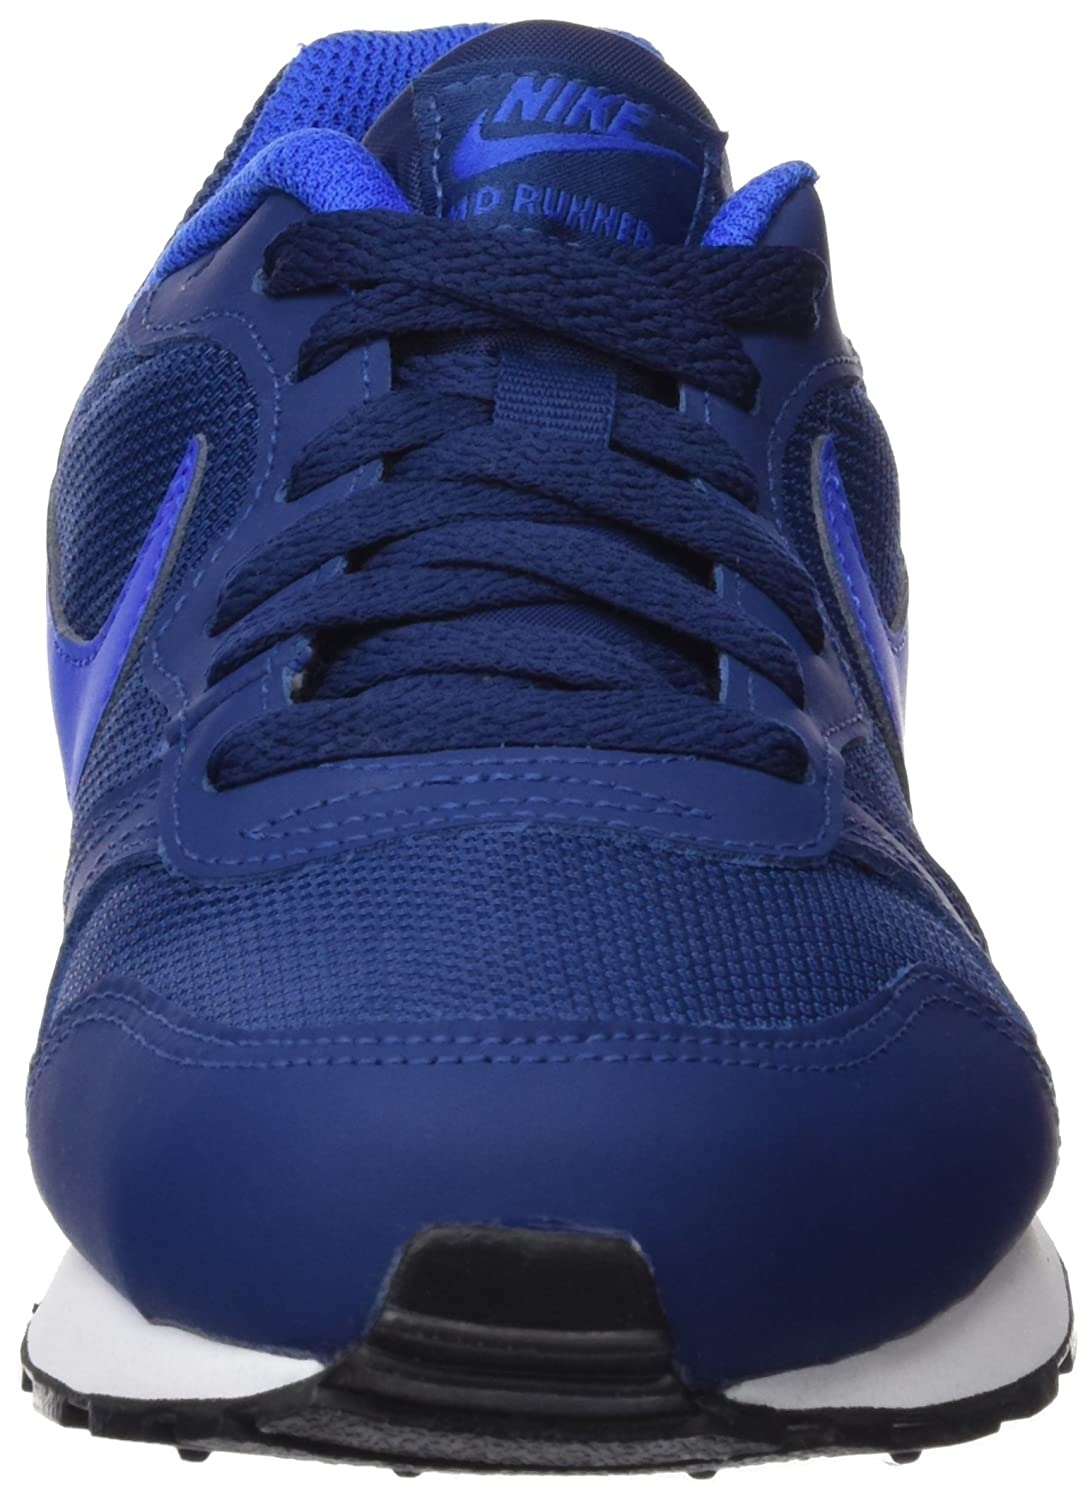 47a79c6ed Nike Md Runner 2 Gs 807316-405 Kids shoes size  4.5Y US  Amazon.ca  Shoes    Handbags